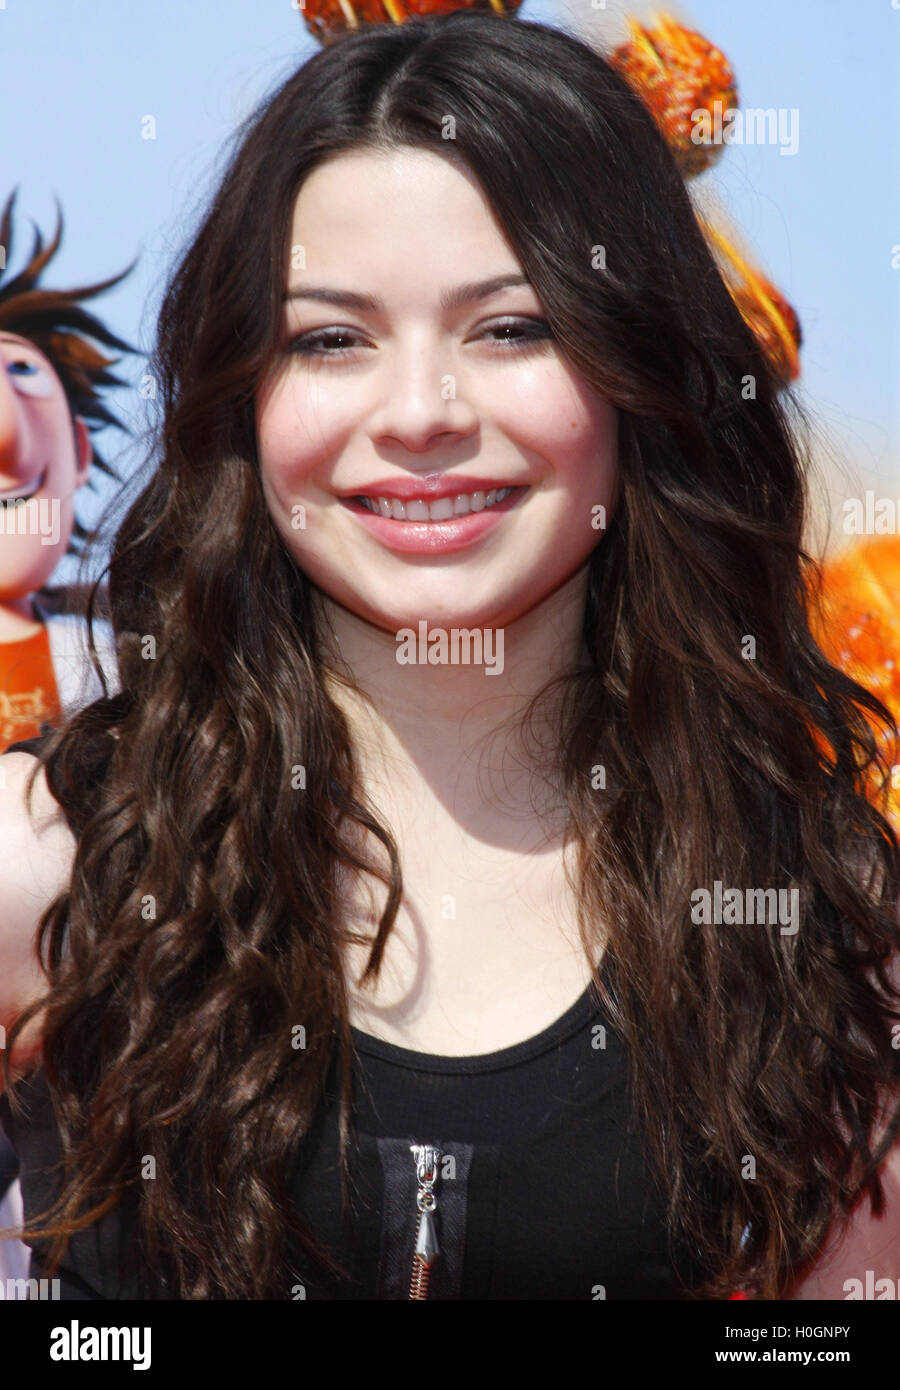 WESTWOOD, CALIFORNIA - Saturday September 12, 2009. Miranda Cosgrove at the Los Angeles premiere of 'Cloudy - Stock Image